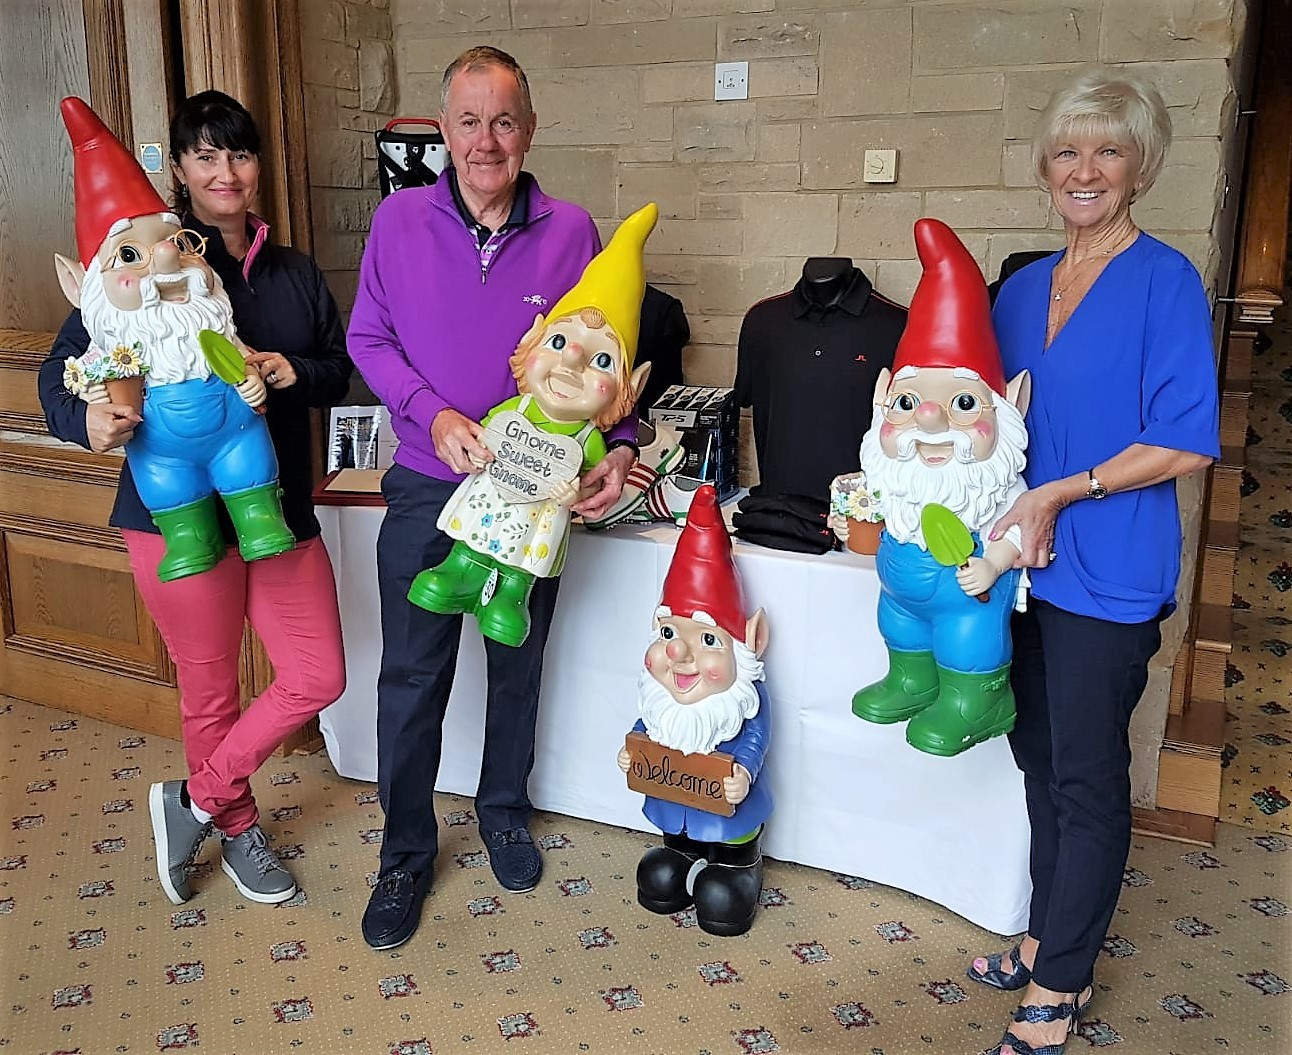 Golf gnomes: Roger Gambarini (centre), Julie  Huxtable on the left and Julie, Roger's wife on the right ( Hux and Gambo) with the unique Hospice Gnomes that are always presented to the team in 13th place